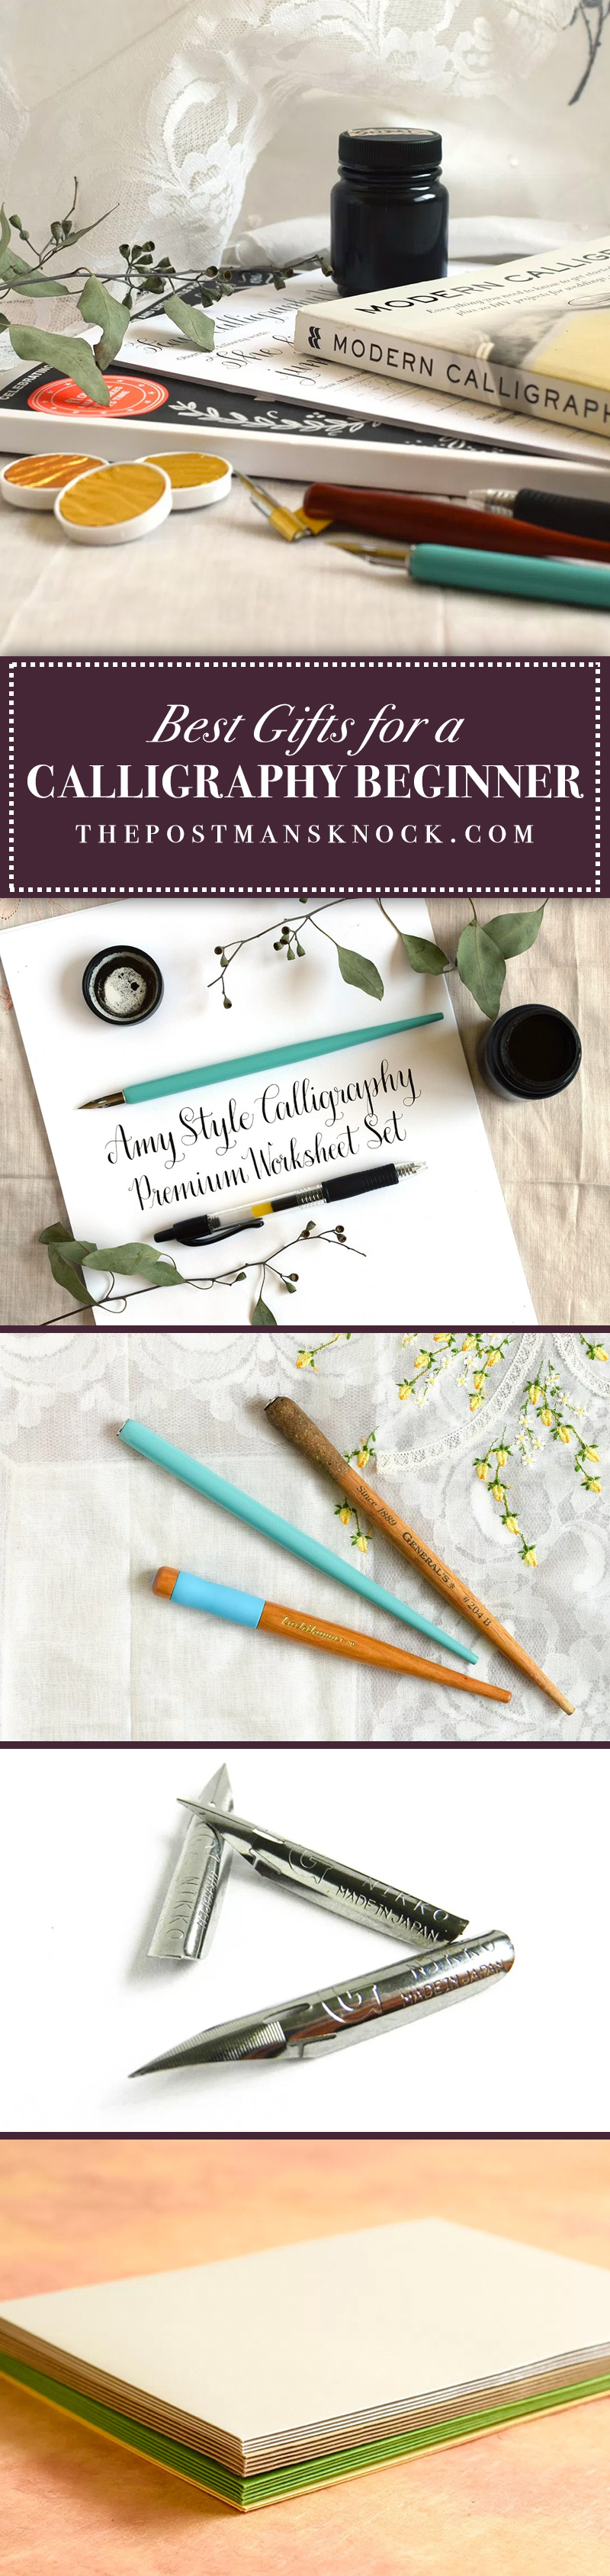 Assemble A Starter Kit That Any Calligraphy Beginner Will Love